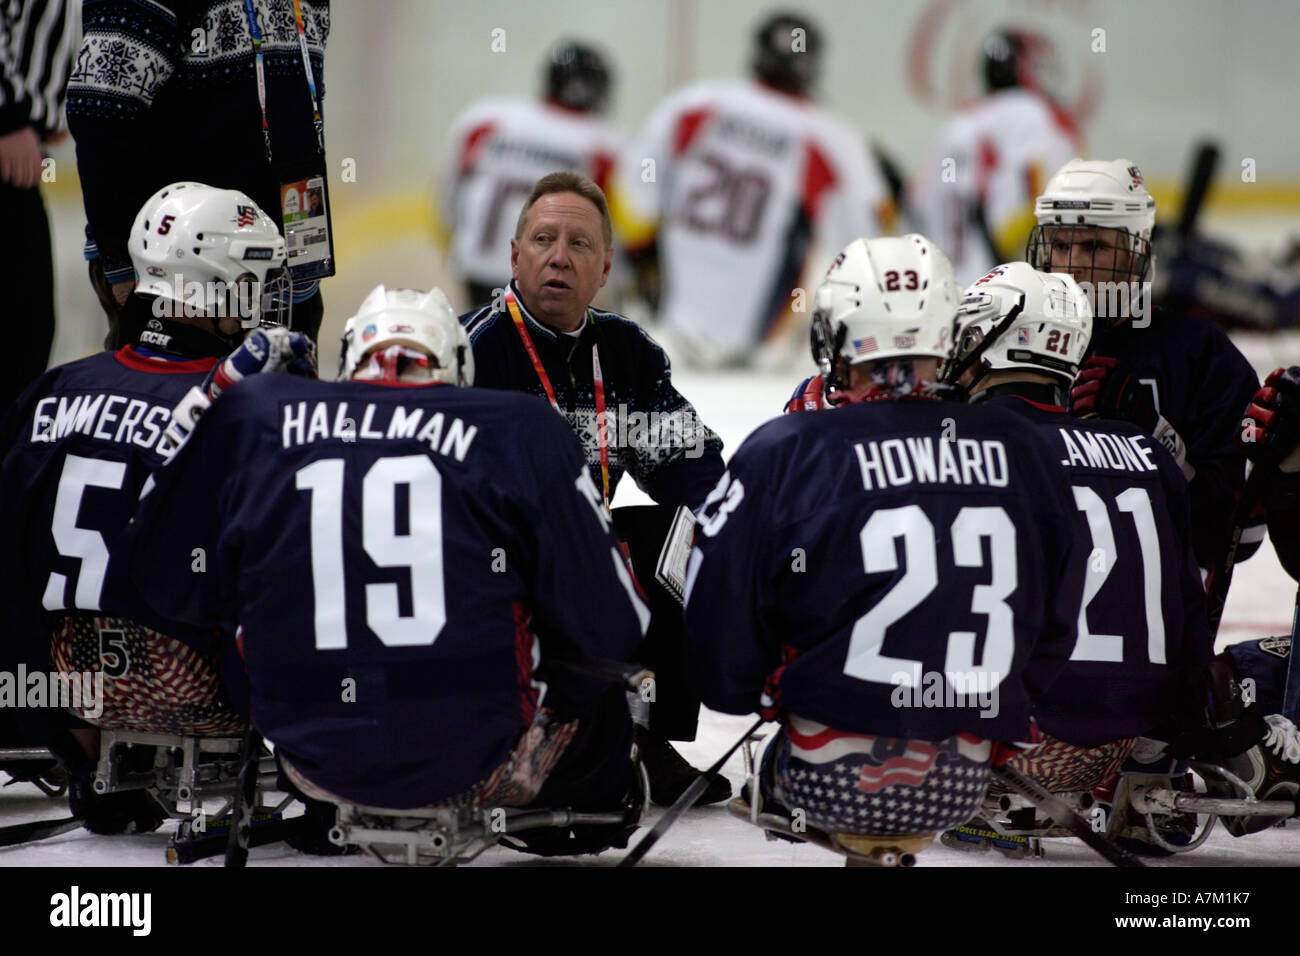 Team USA coach gives his team a pep talk during the opening game Stock Photo